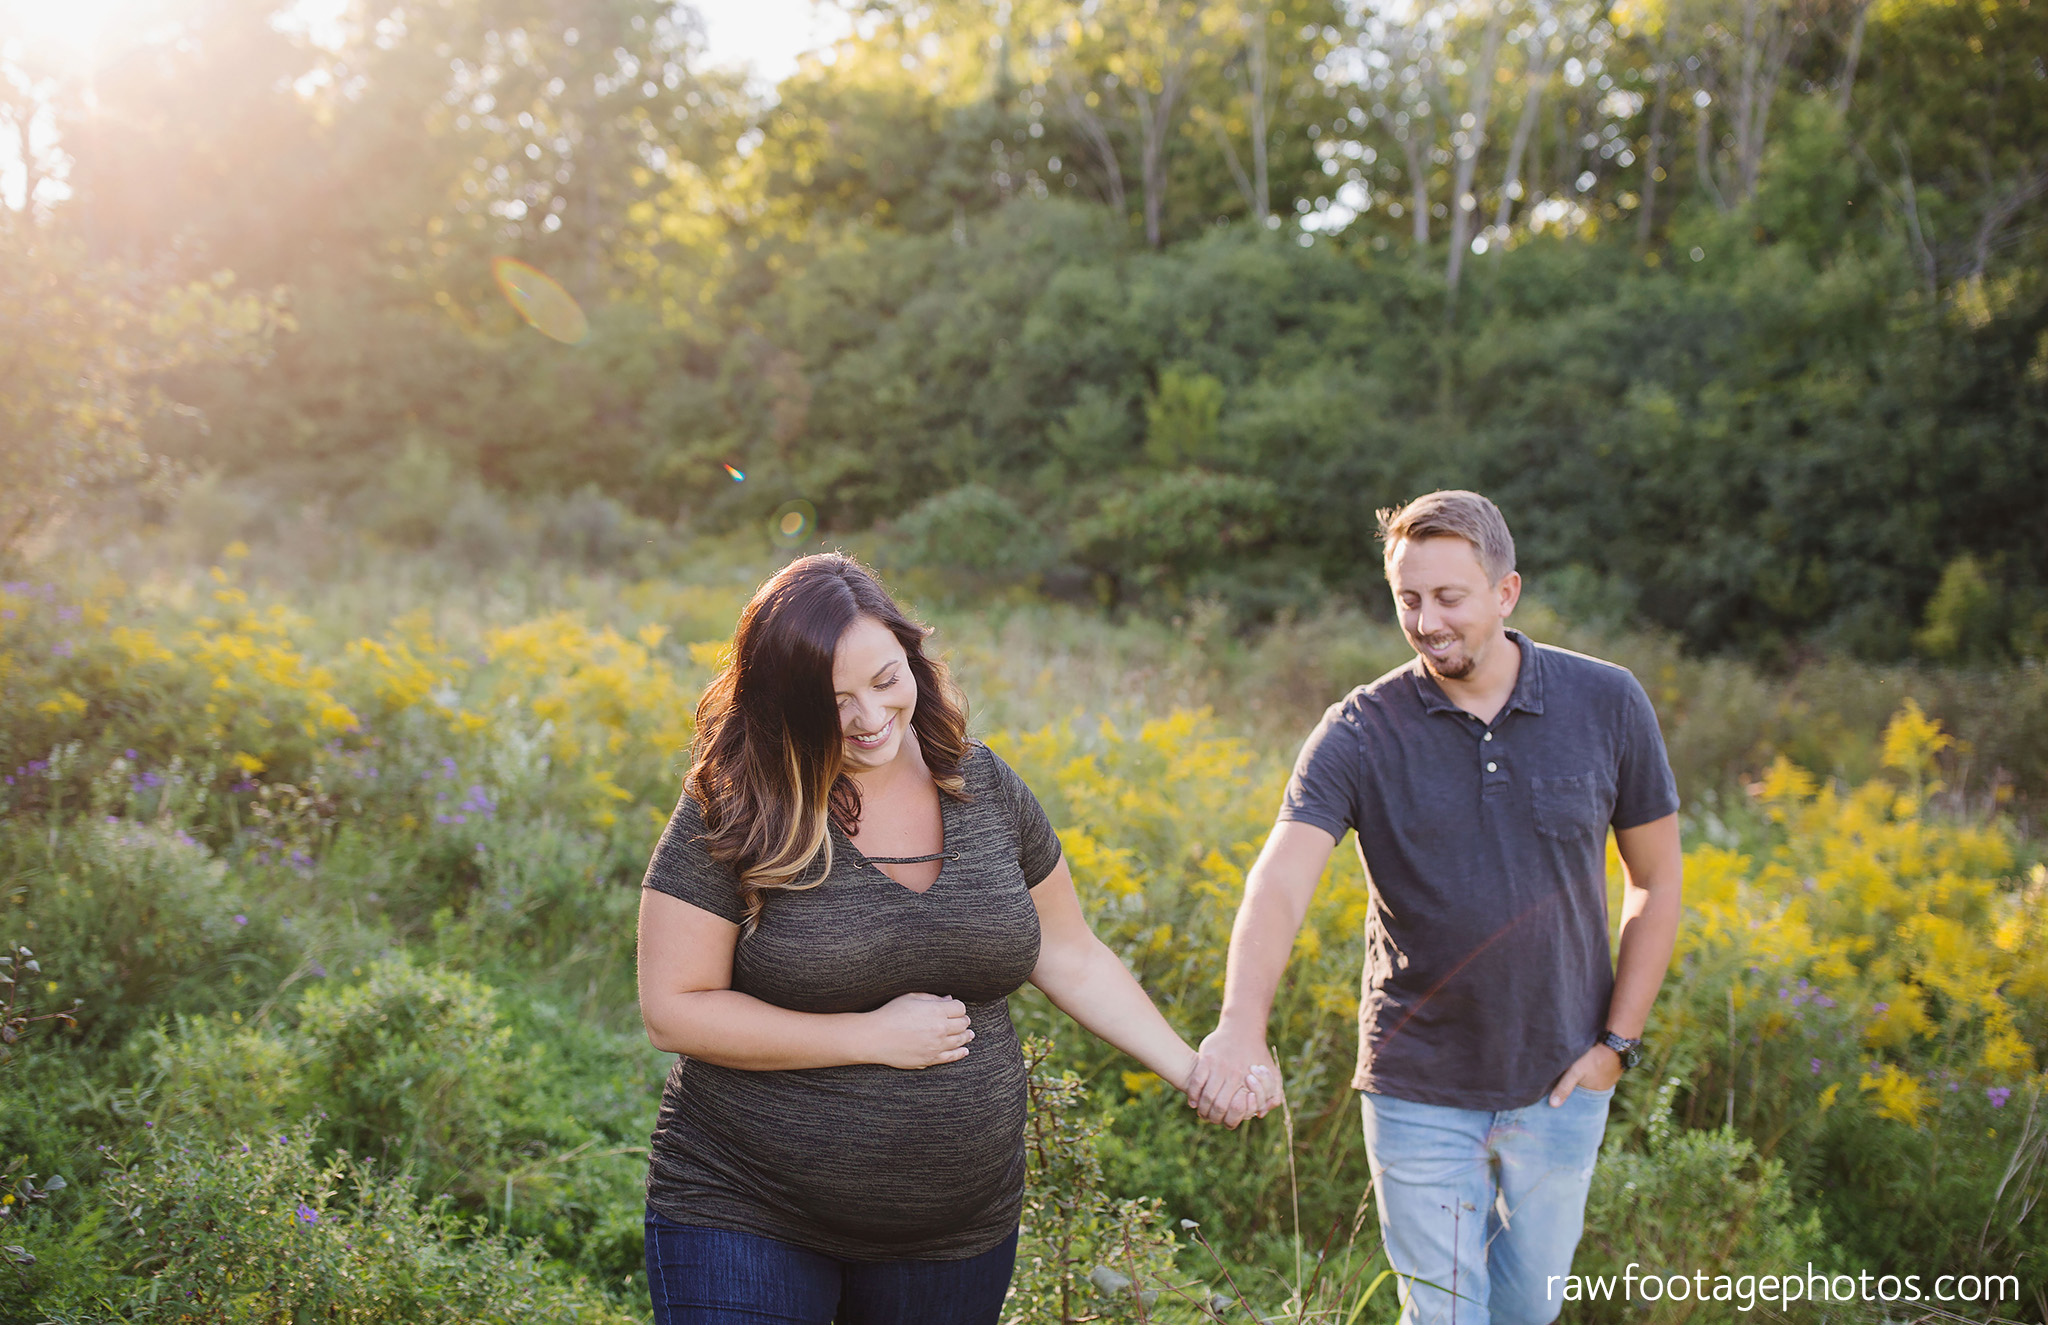 London_Ontario_Family_photographer-Fall_Minis-Woods-Forest-Nature-Candid-Lifestyle-Raw_Footage_Photography038.jpg